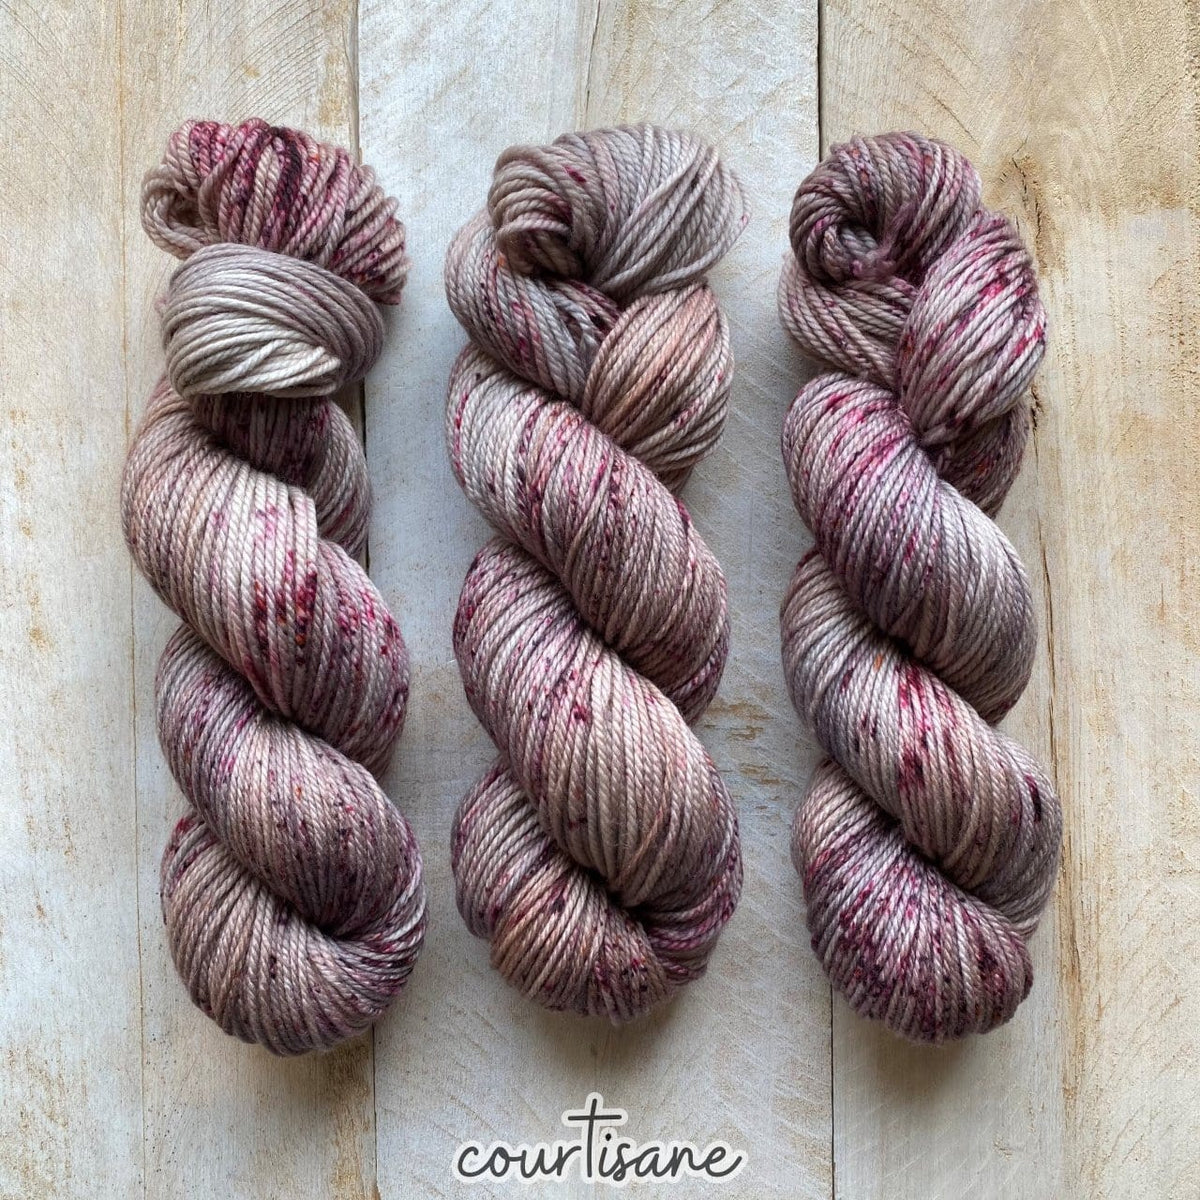 COURTISANE MERINO WORSTED